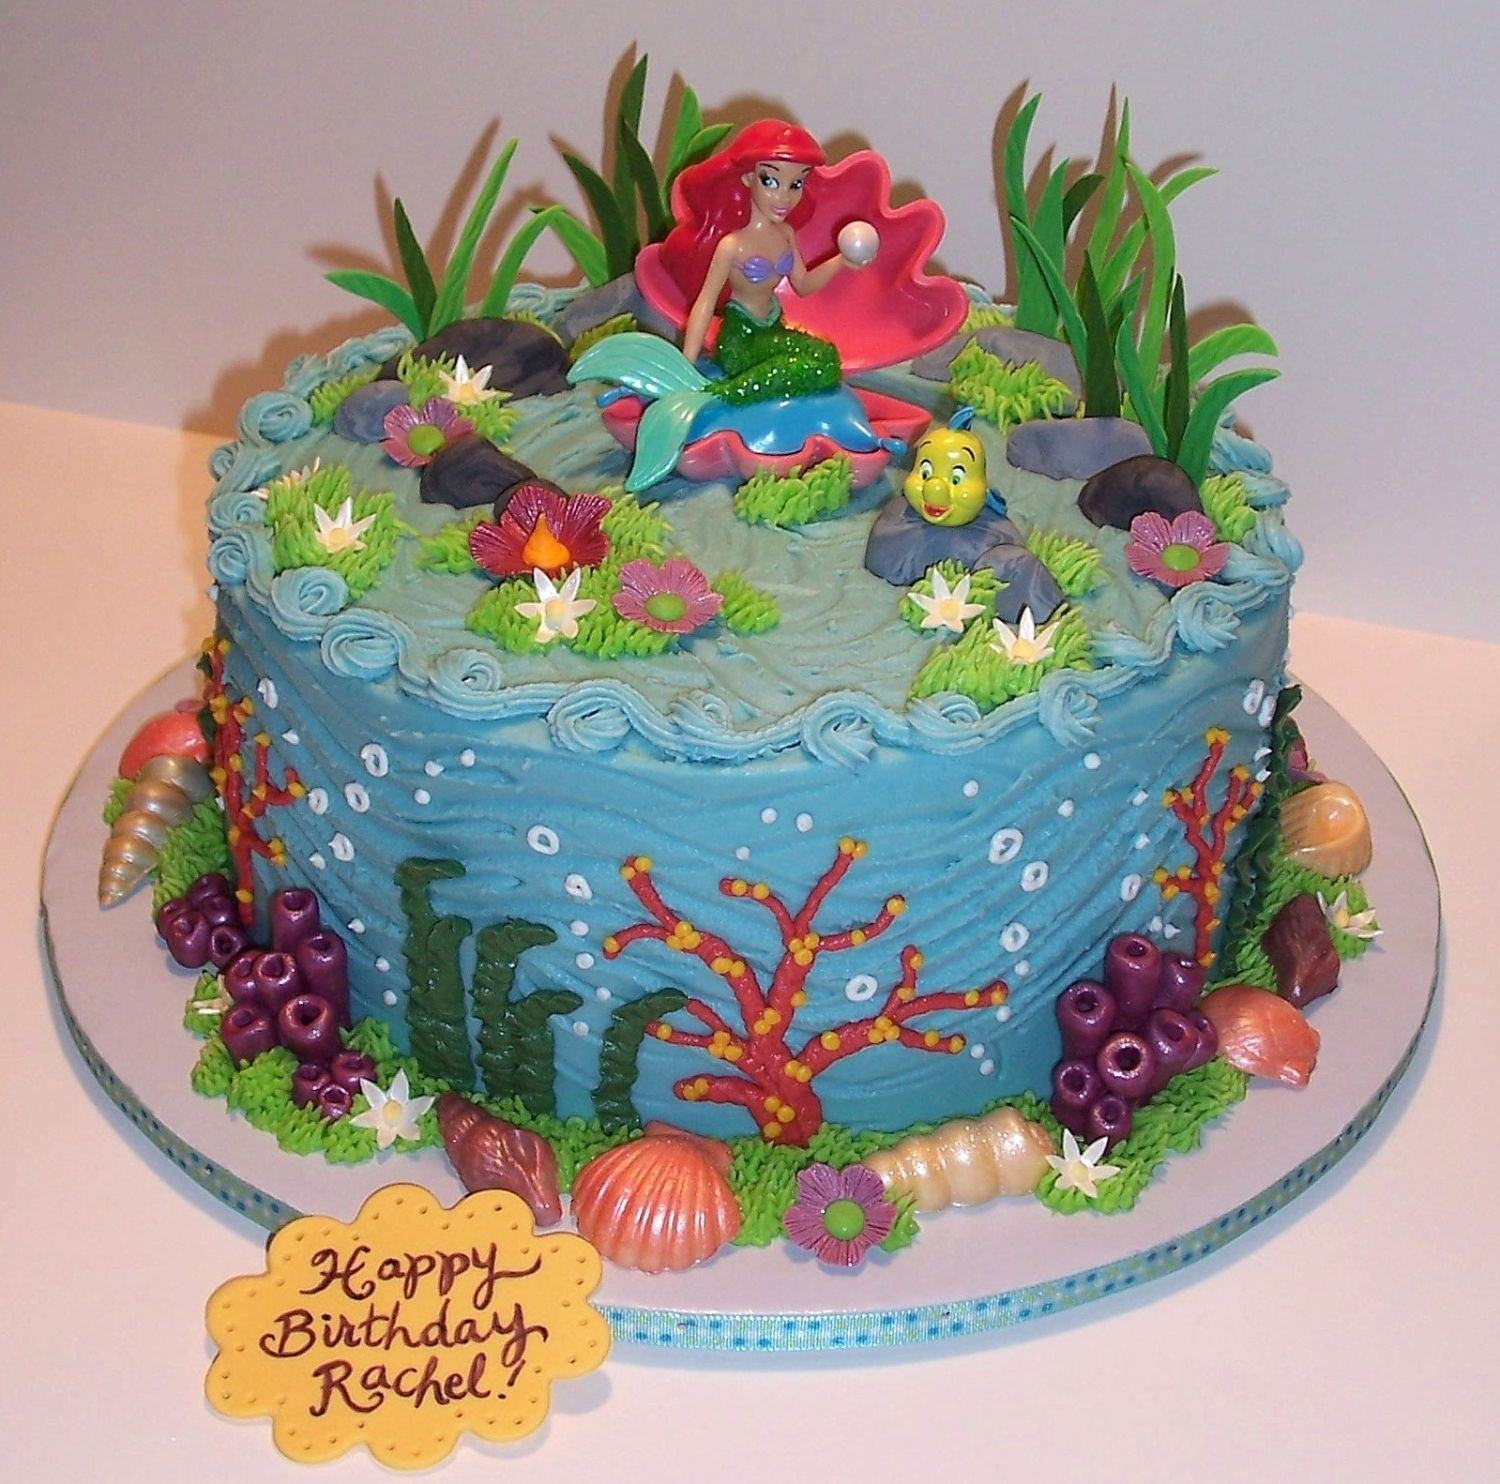 Ariel Cake Decorations A Mermaids Tale Pound Cake With Buttercream And Gumpaste